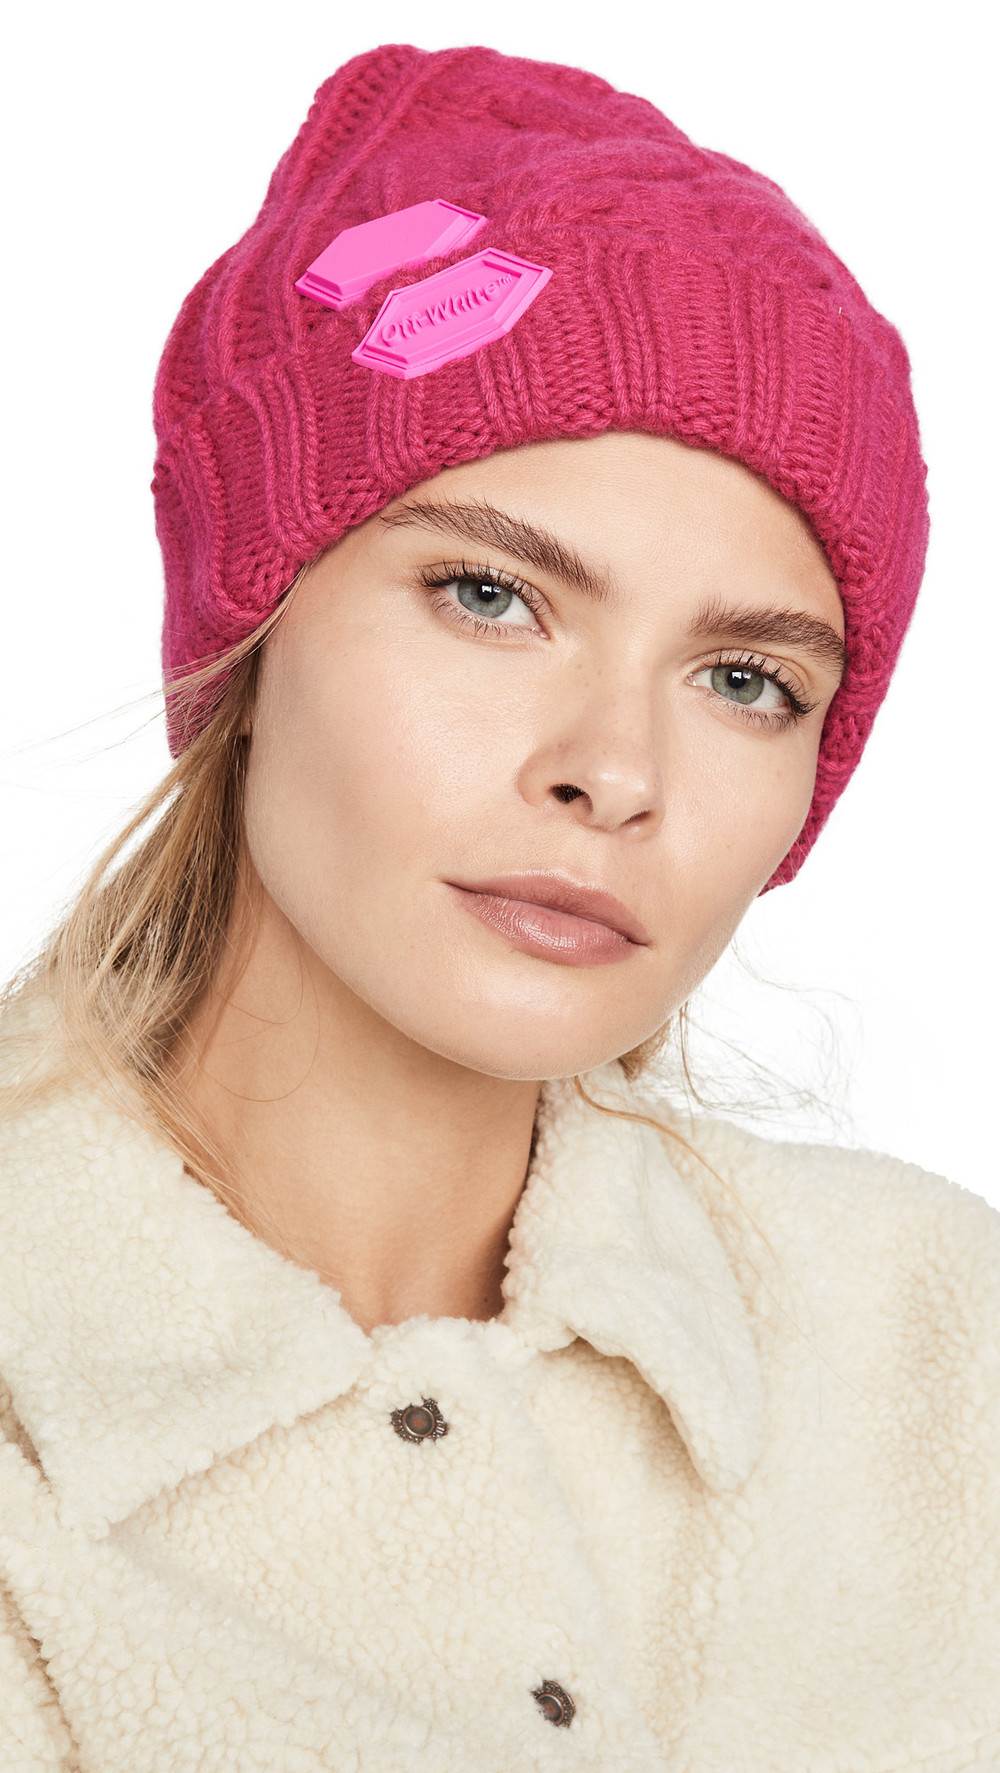 Off-White Knit Pop Color Hat in fuchsia